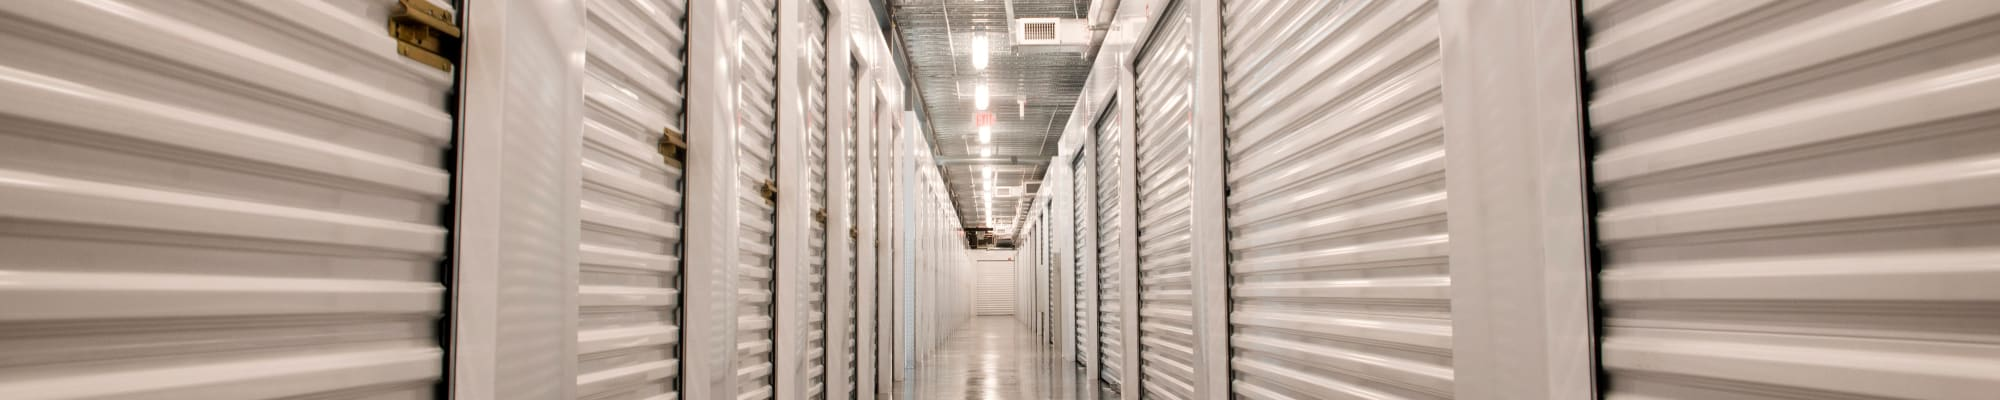 Storage features at Spacebox Storage Crestview in Crestview, Florida